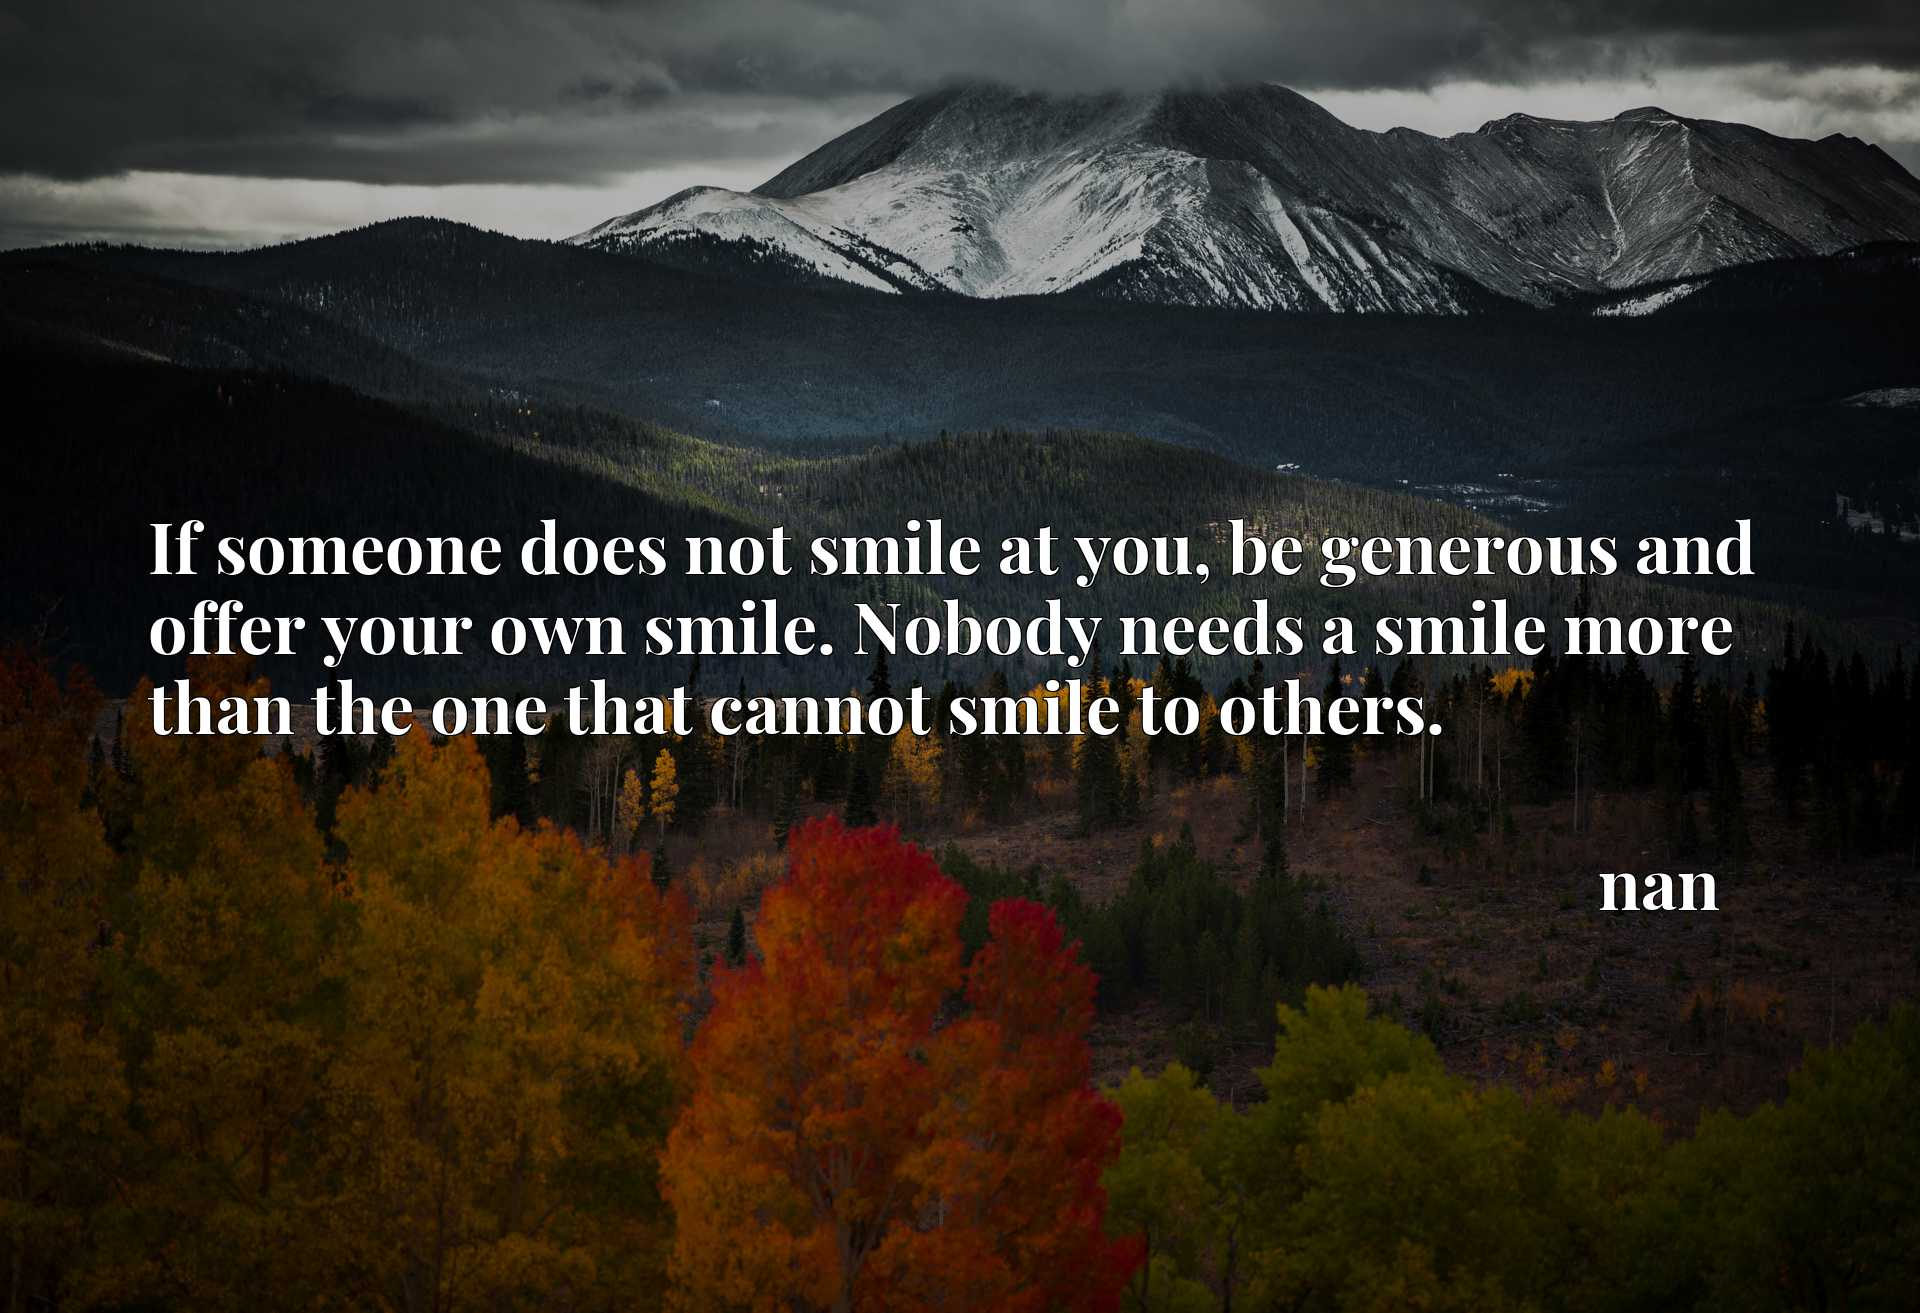 If someone does not smile at you, be generous and offer your own smile. Nobody needs a smile more than the one that cannot smile to others.